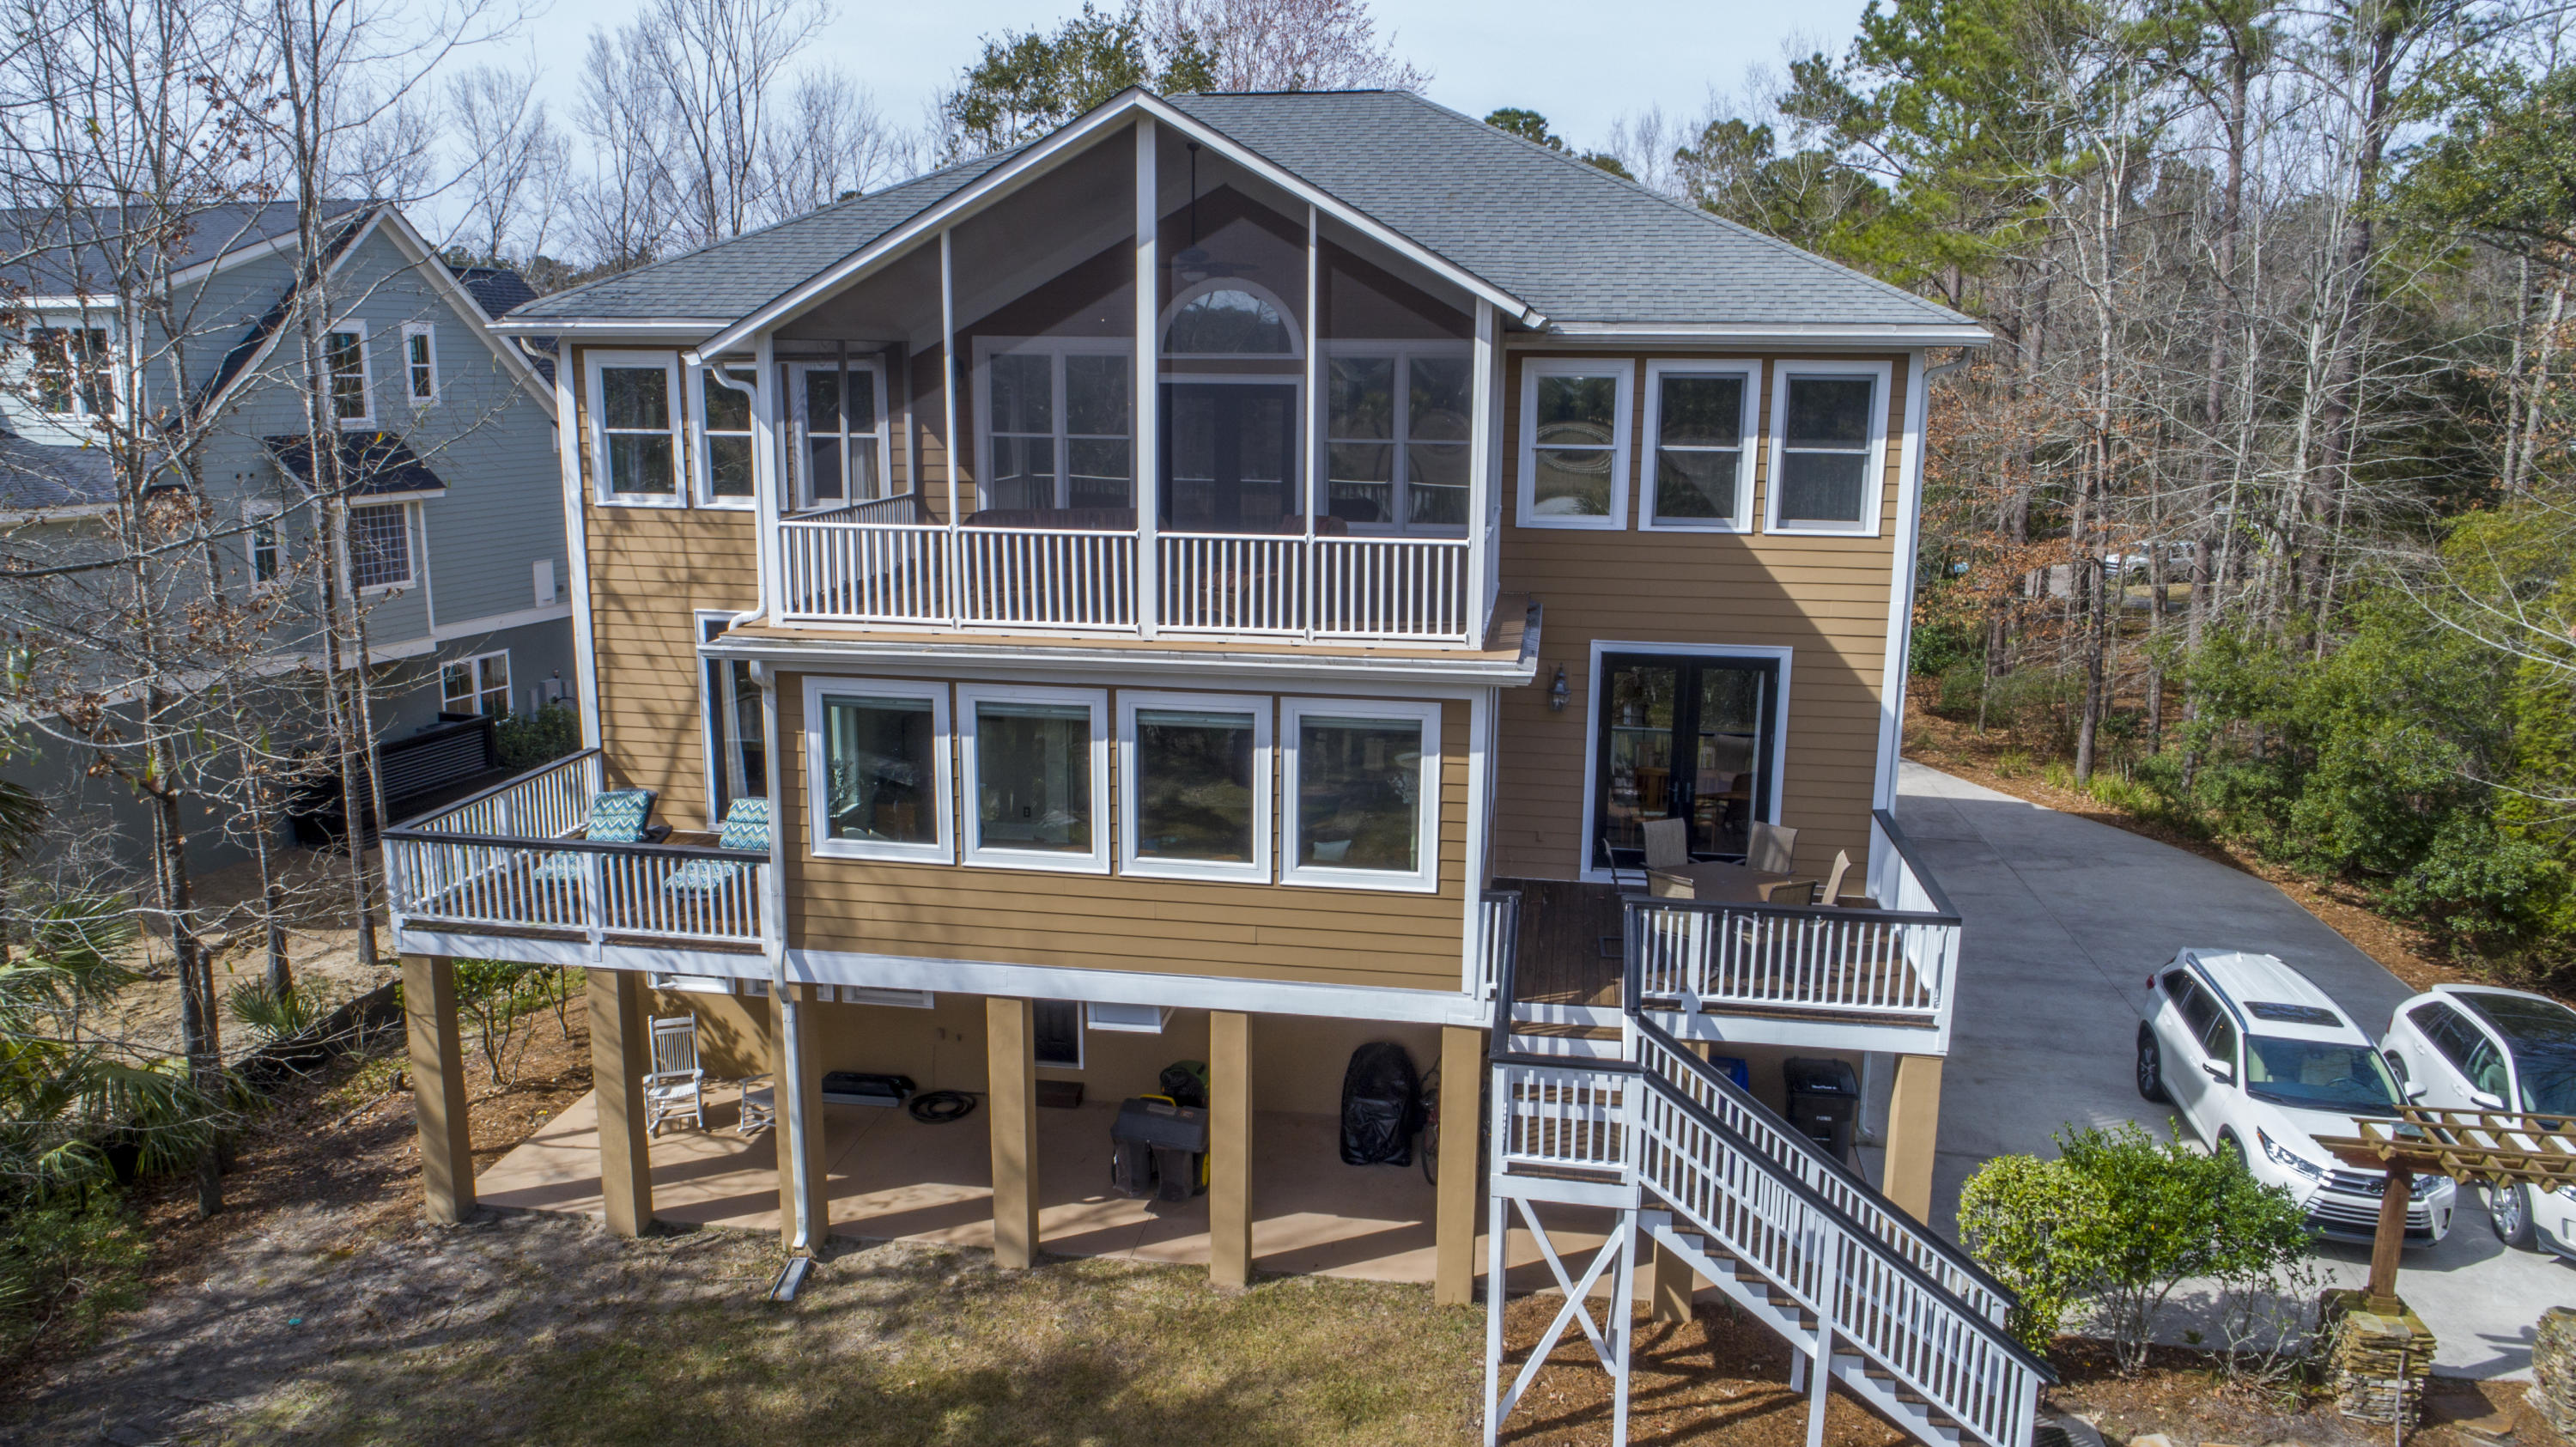 Dunes West Homes For Sale - 1764 Greenspoint, Mount Pleasant, SC - 22